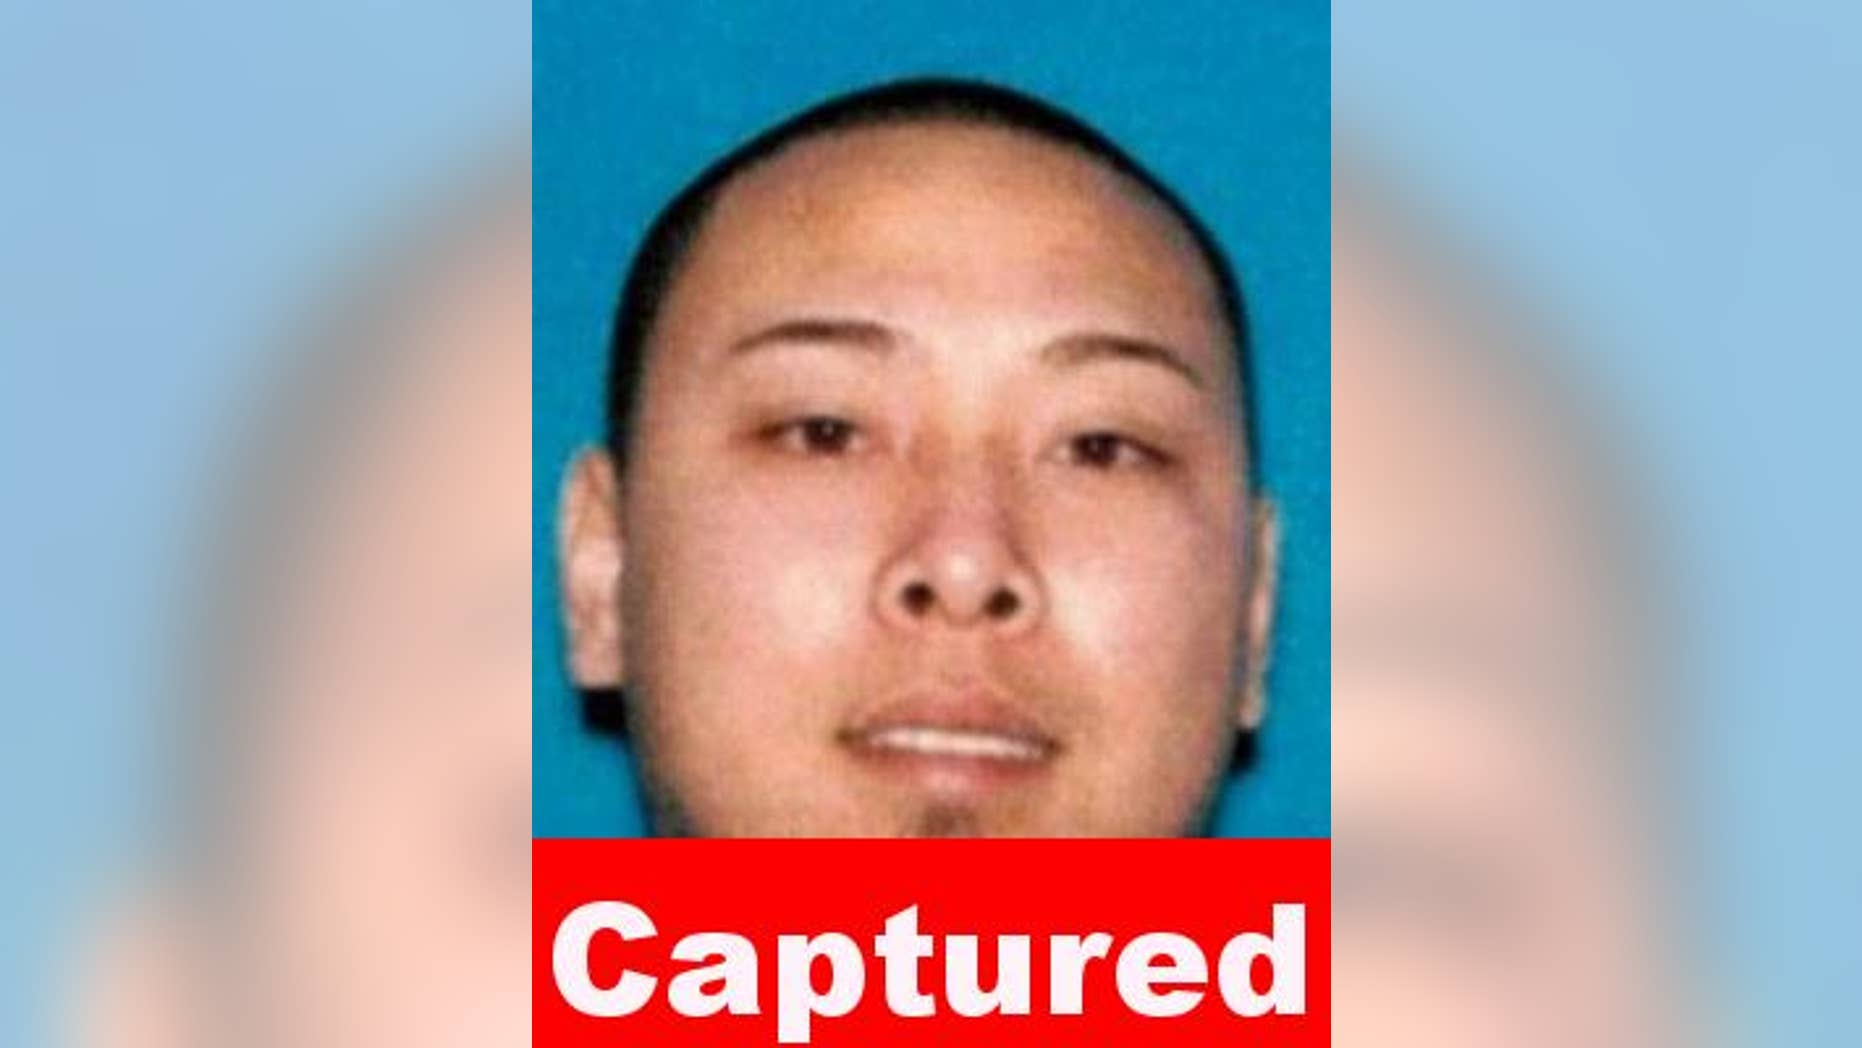 Alleged leader of a violent street gang Steven C. Touch, 28, who had been featured on Massachusetts State Police's Most Wanted list was ordered held without bail for his role in a home invasion that resulted in murder. (FBI)